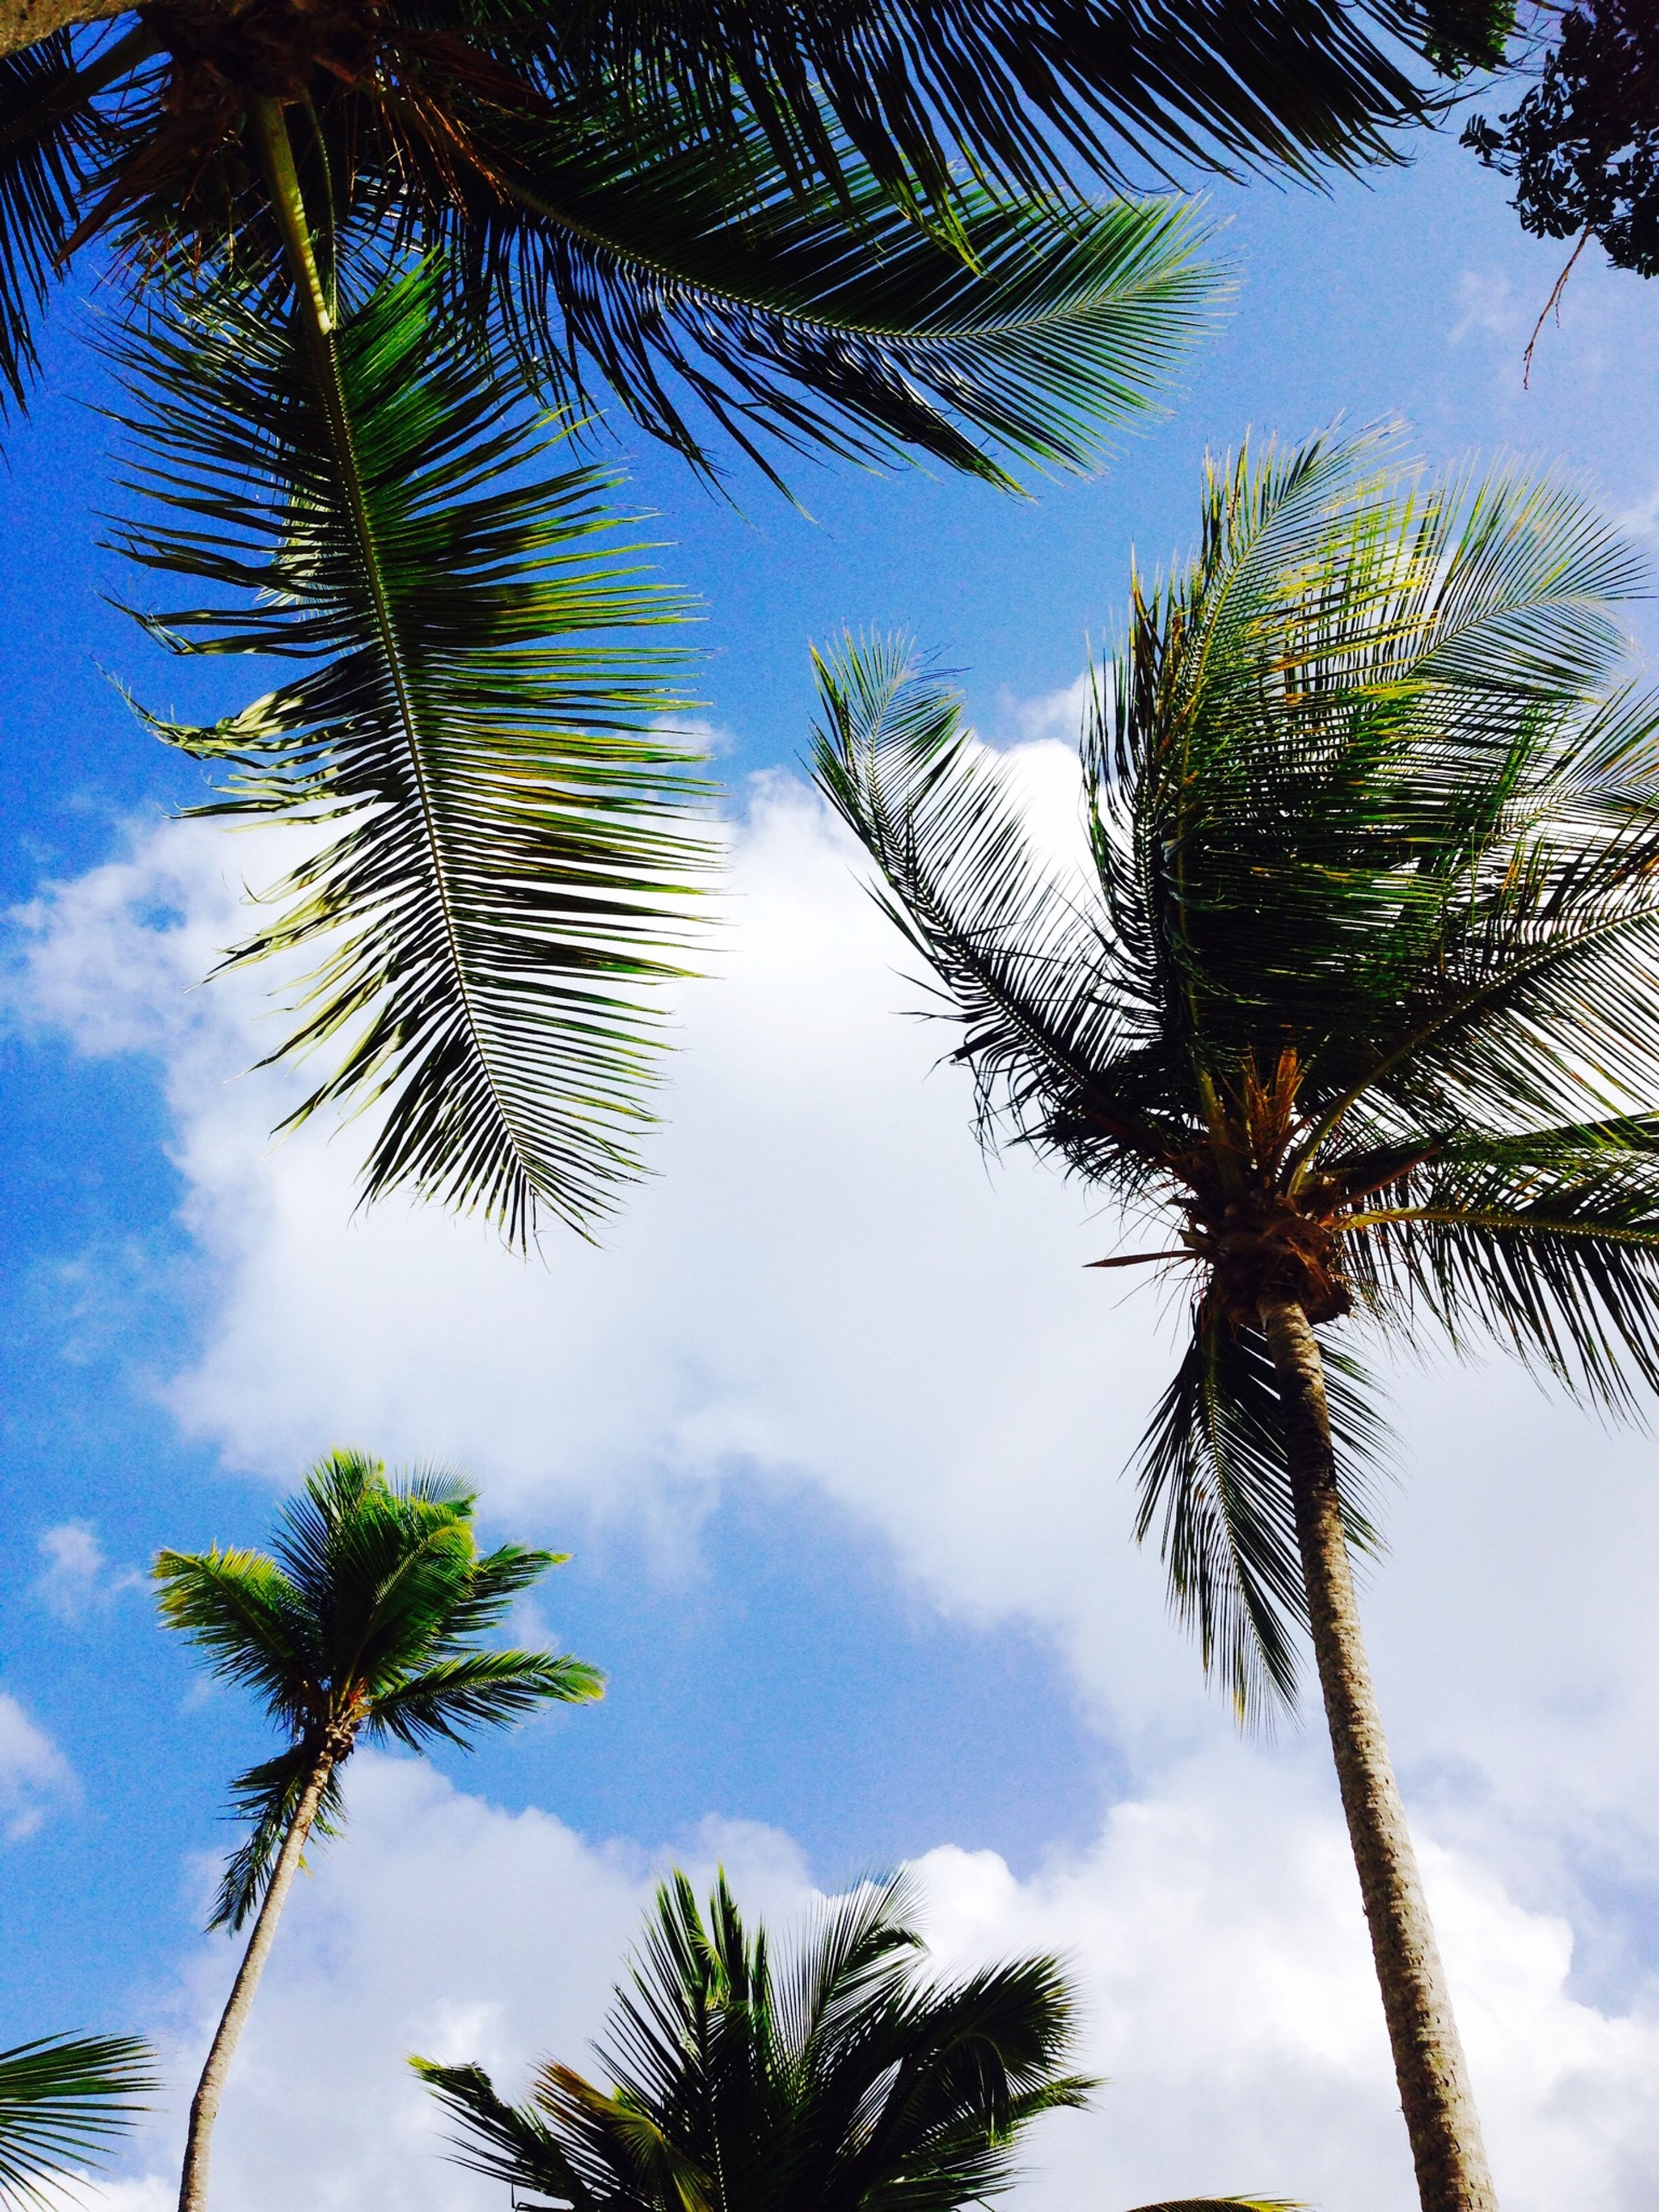 palm tree, low angle view, tree, sky, growth, cloud - sky, nature, tranquility, tree trunk, beauty in nature, cloud, branch, silhouette, palm leaf, scenics, coconut palm tree, cloudy, leaf, palm frond, blue